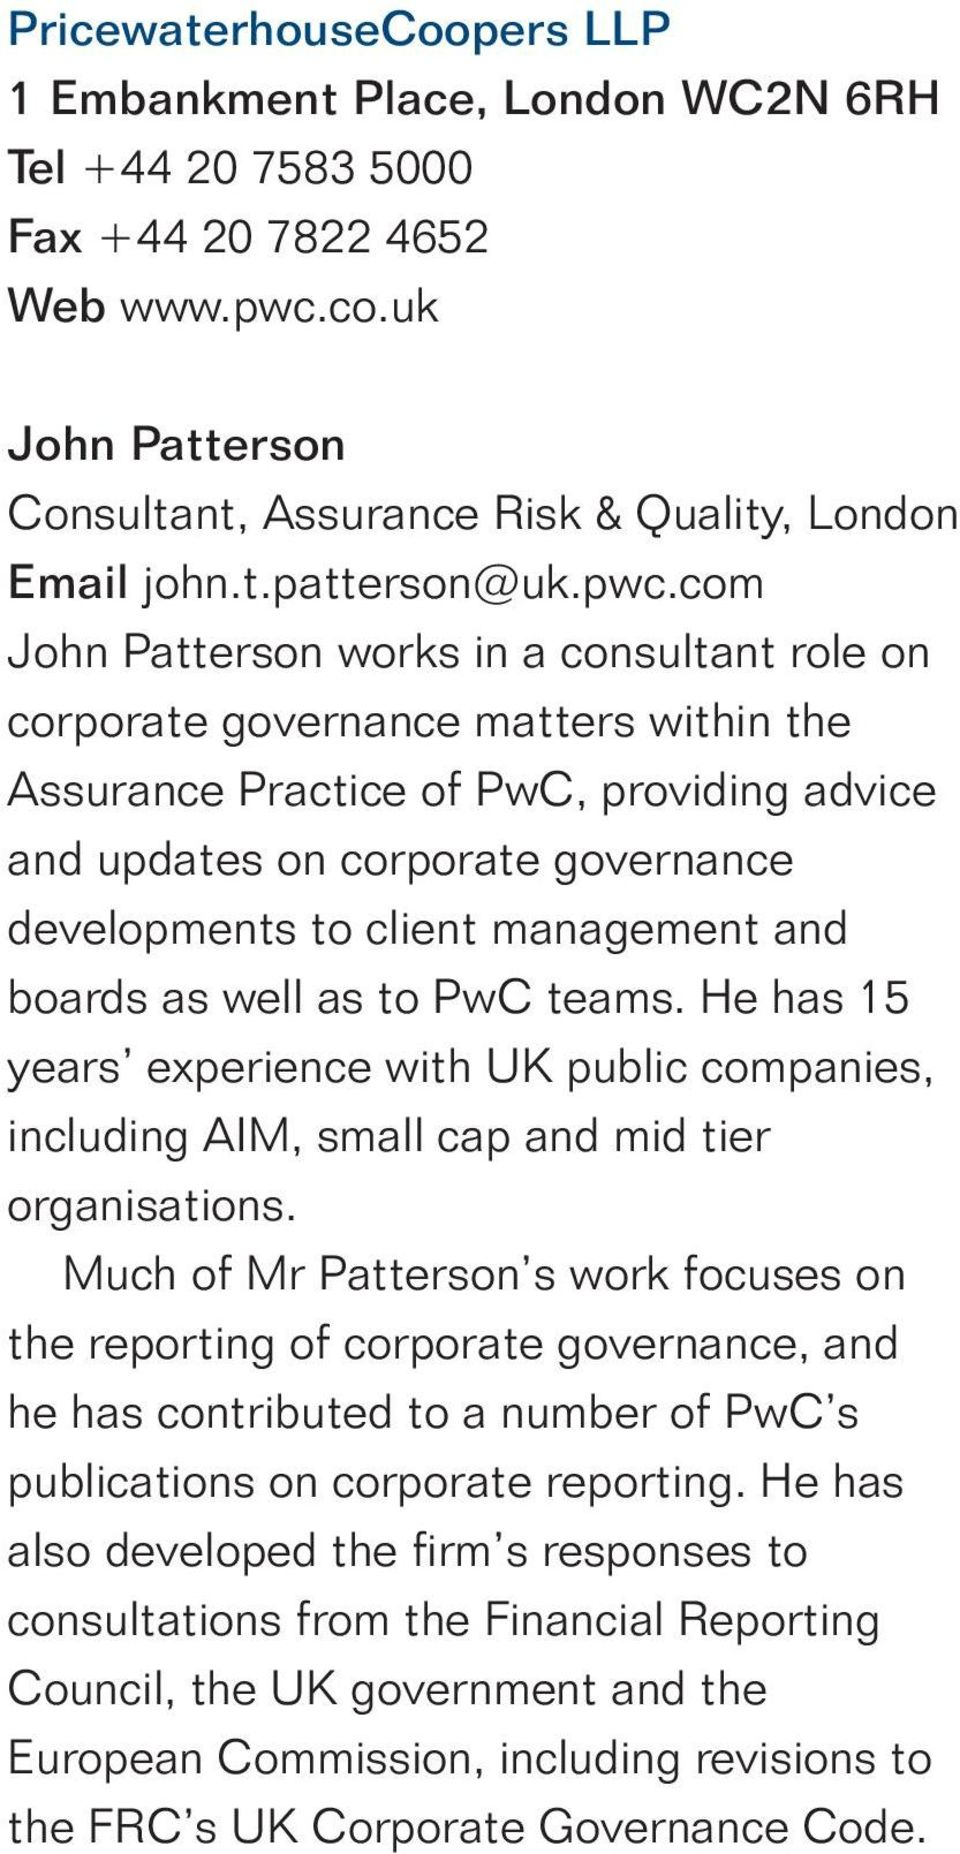 management and boards as we as to PwC teams. He has 15 years experience with UK pubic companies, incuding AIM, sma cap and mid tier organisations.